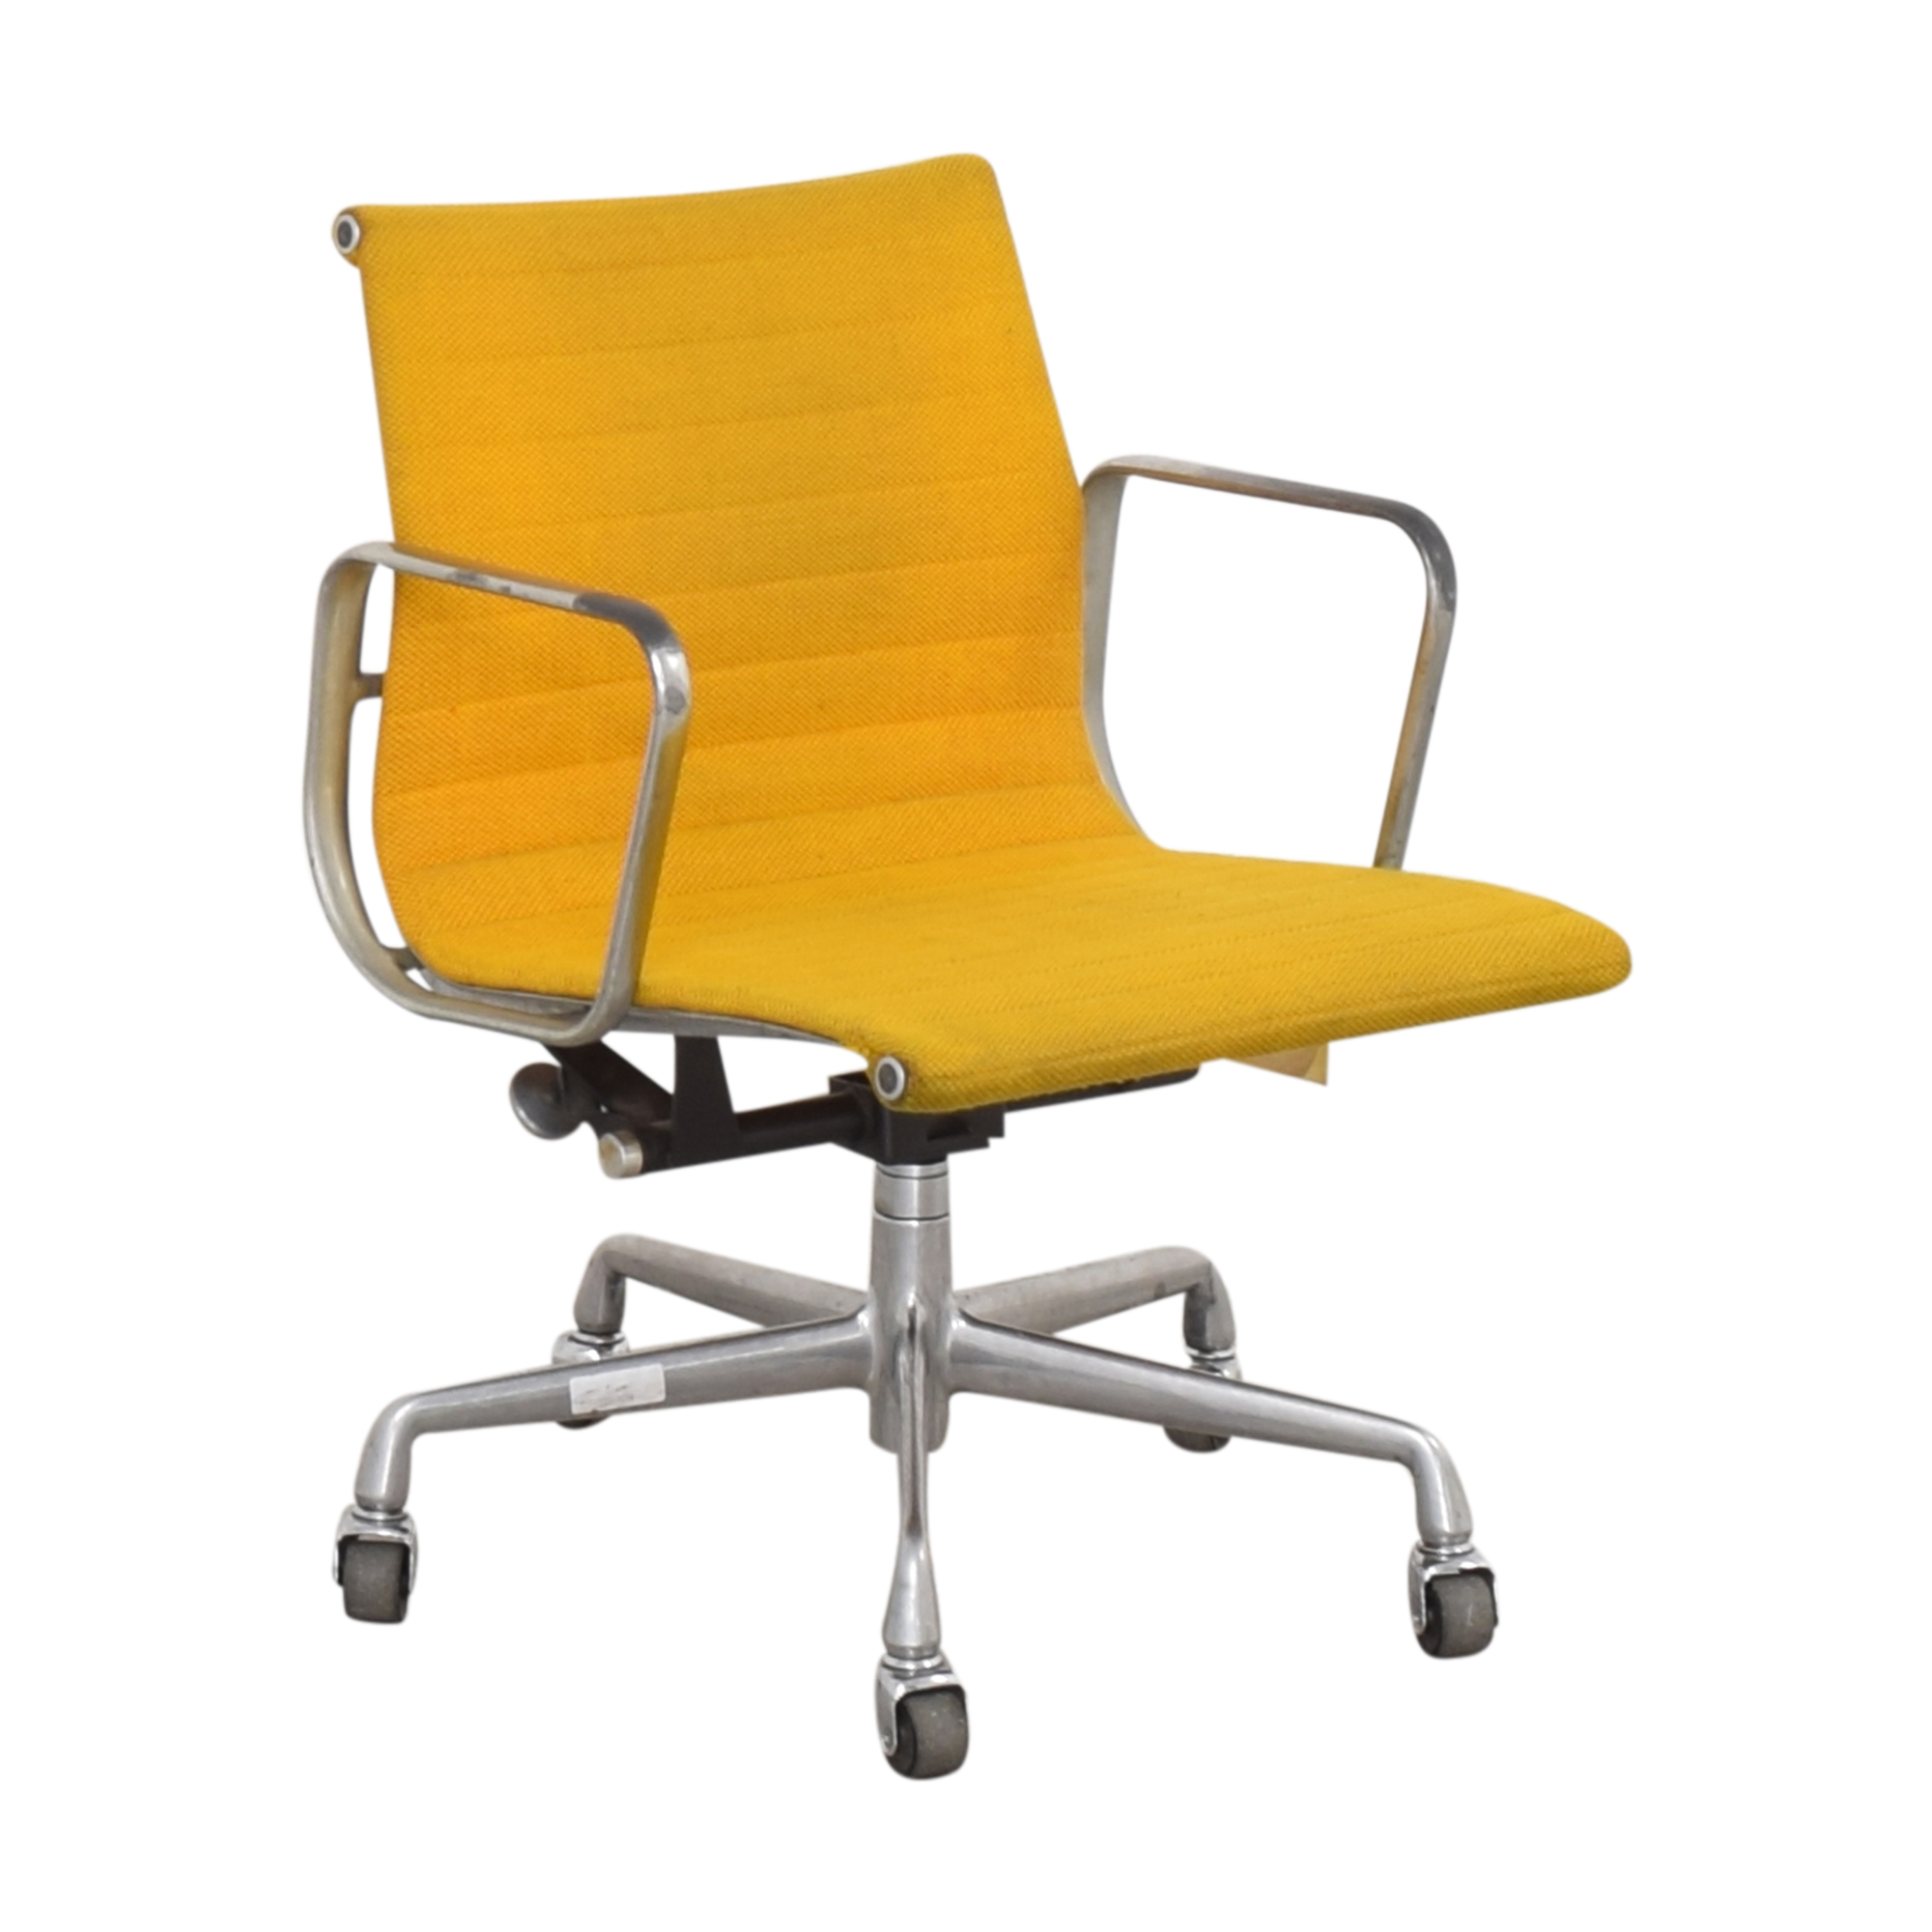 Herman Miller Herman Miller Eames Aluminum Group Management Chair yellow and silver